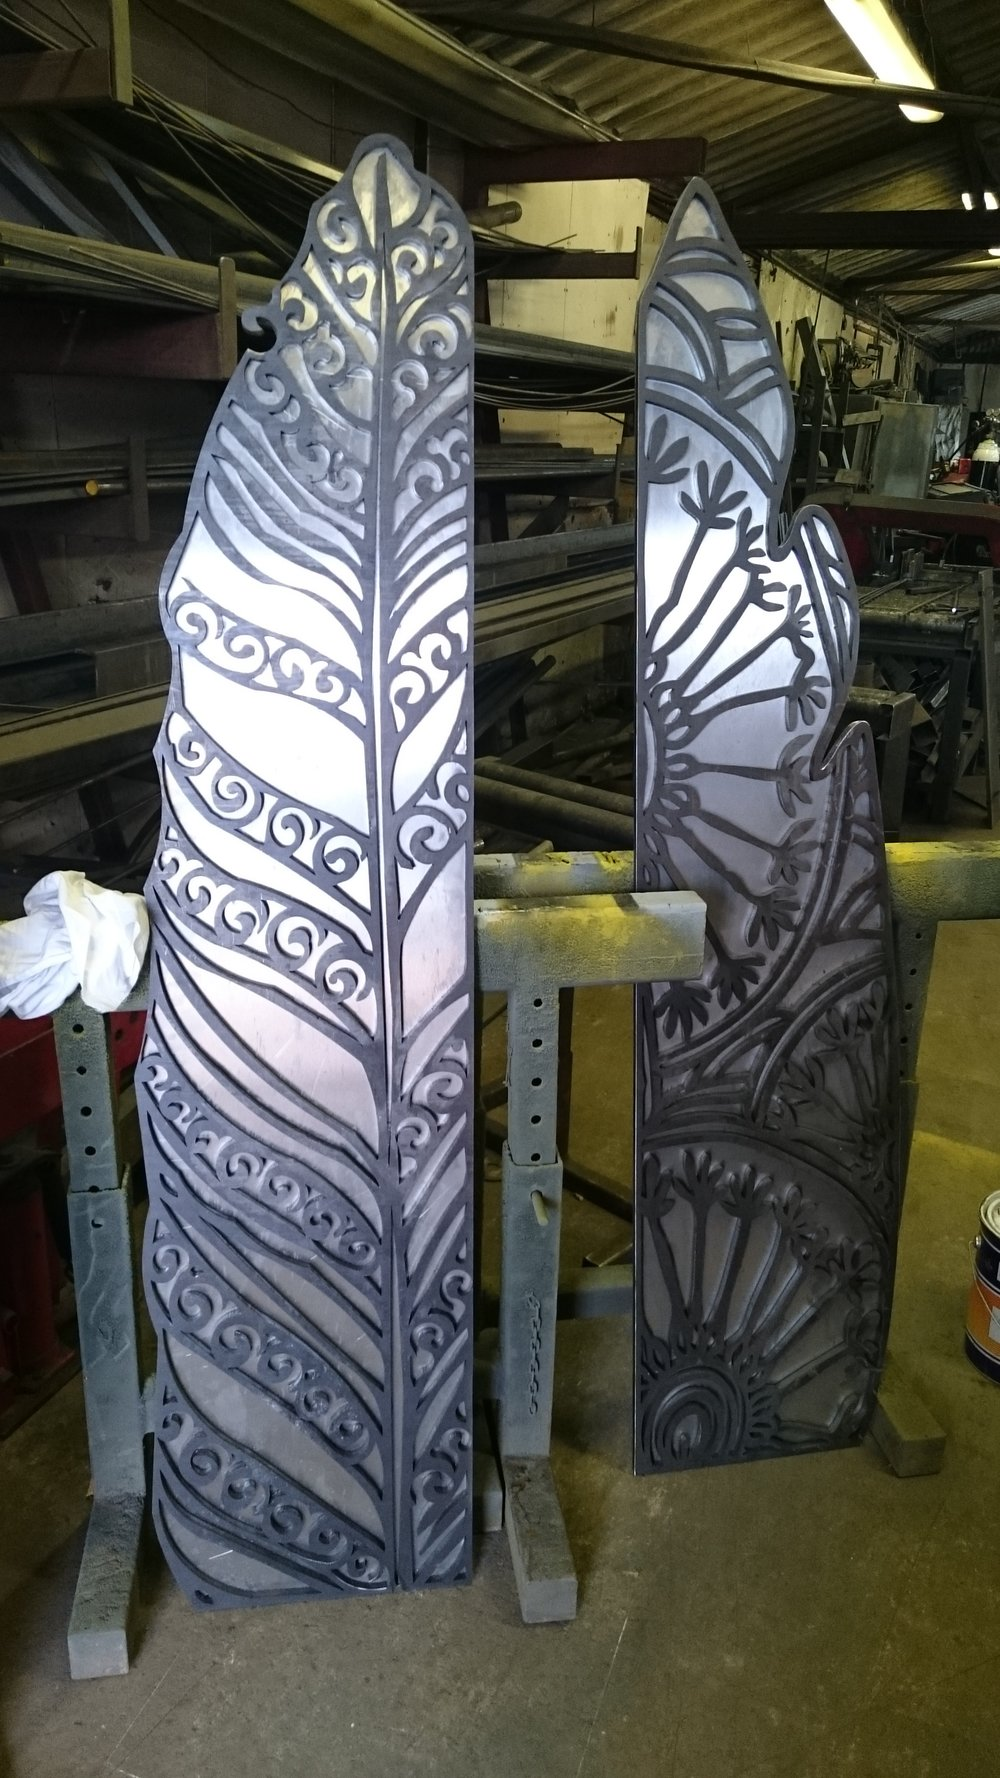 Trail Markers at Allsteel Fabricators Ltd during construction